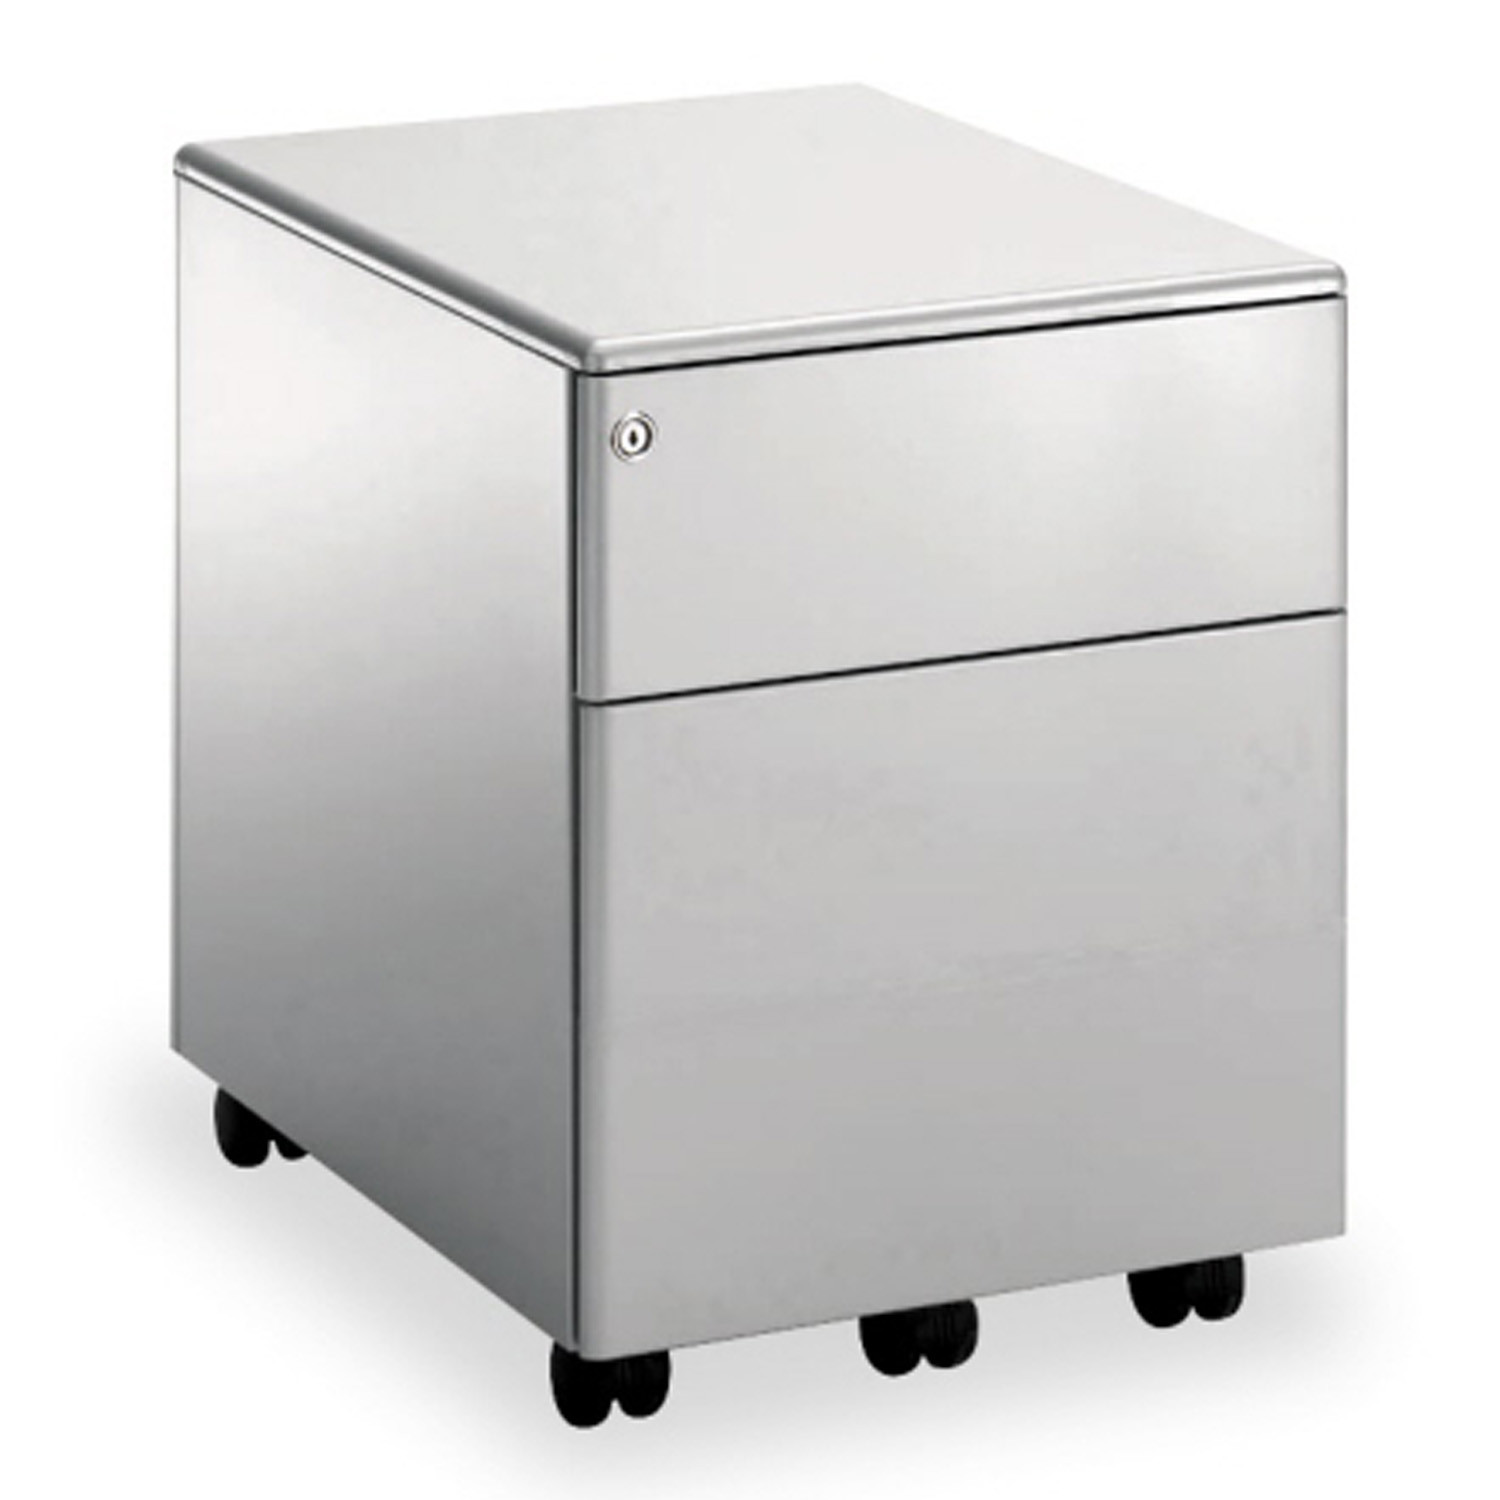 Universal Mobile 320 1 box drawer + 1 file drawer